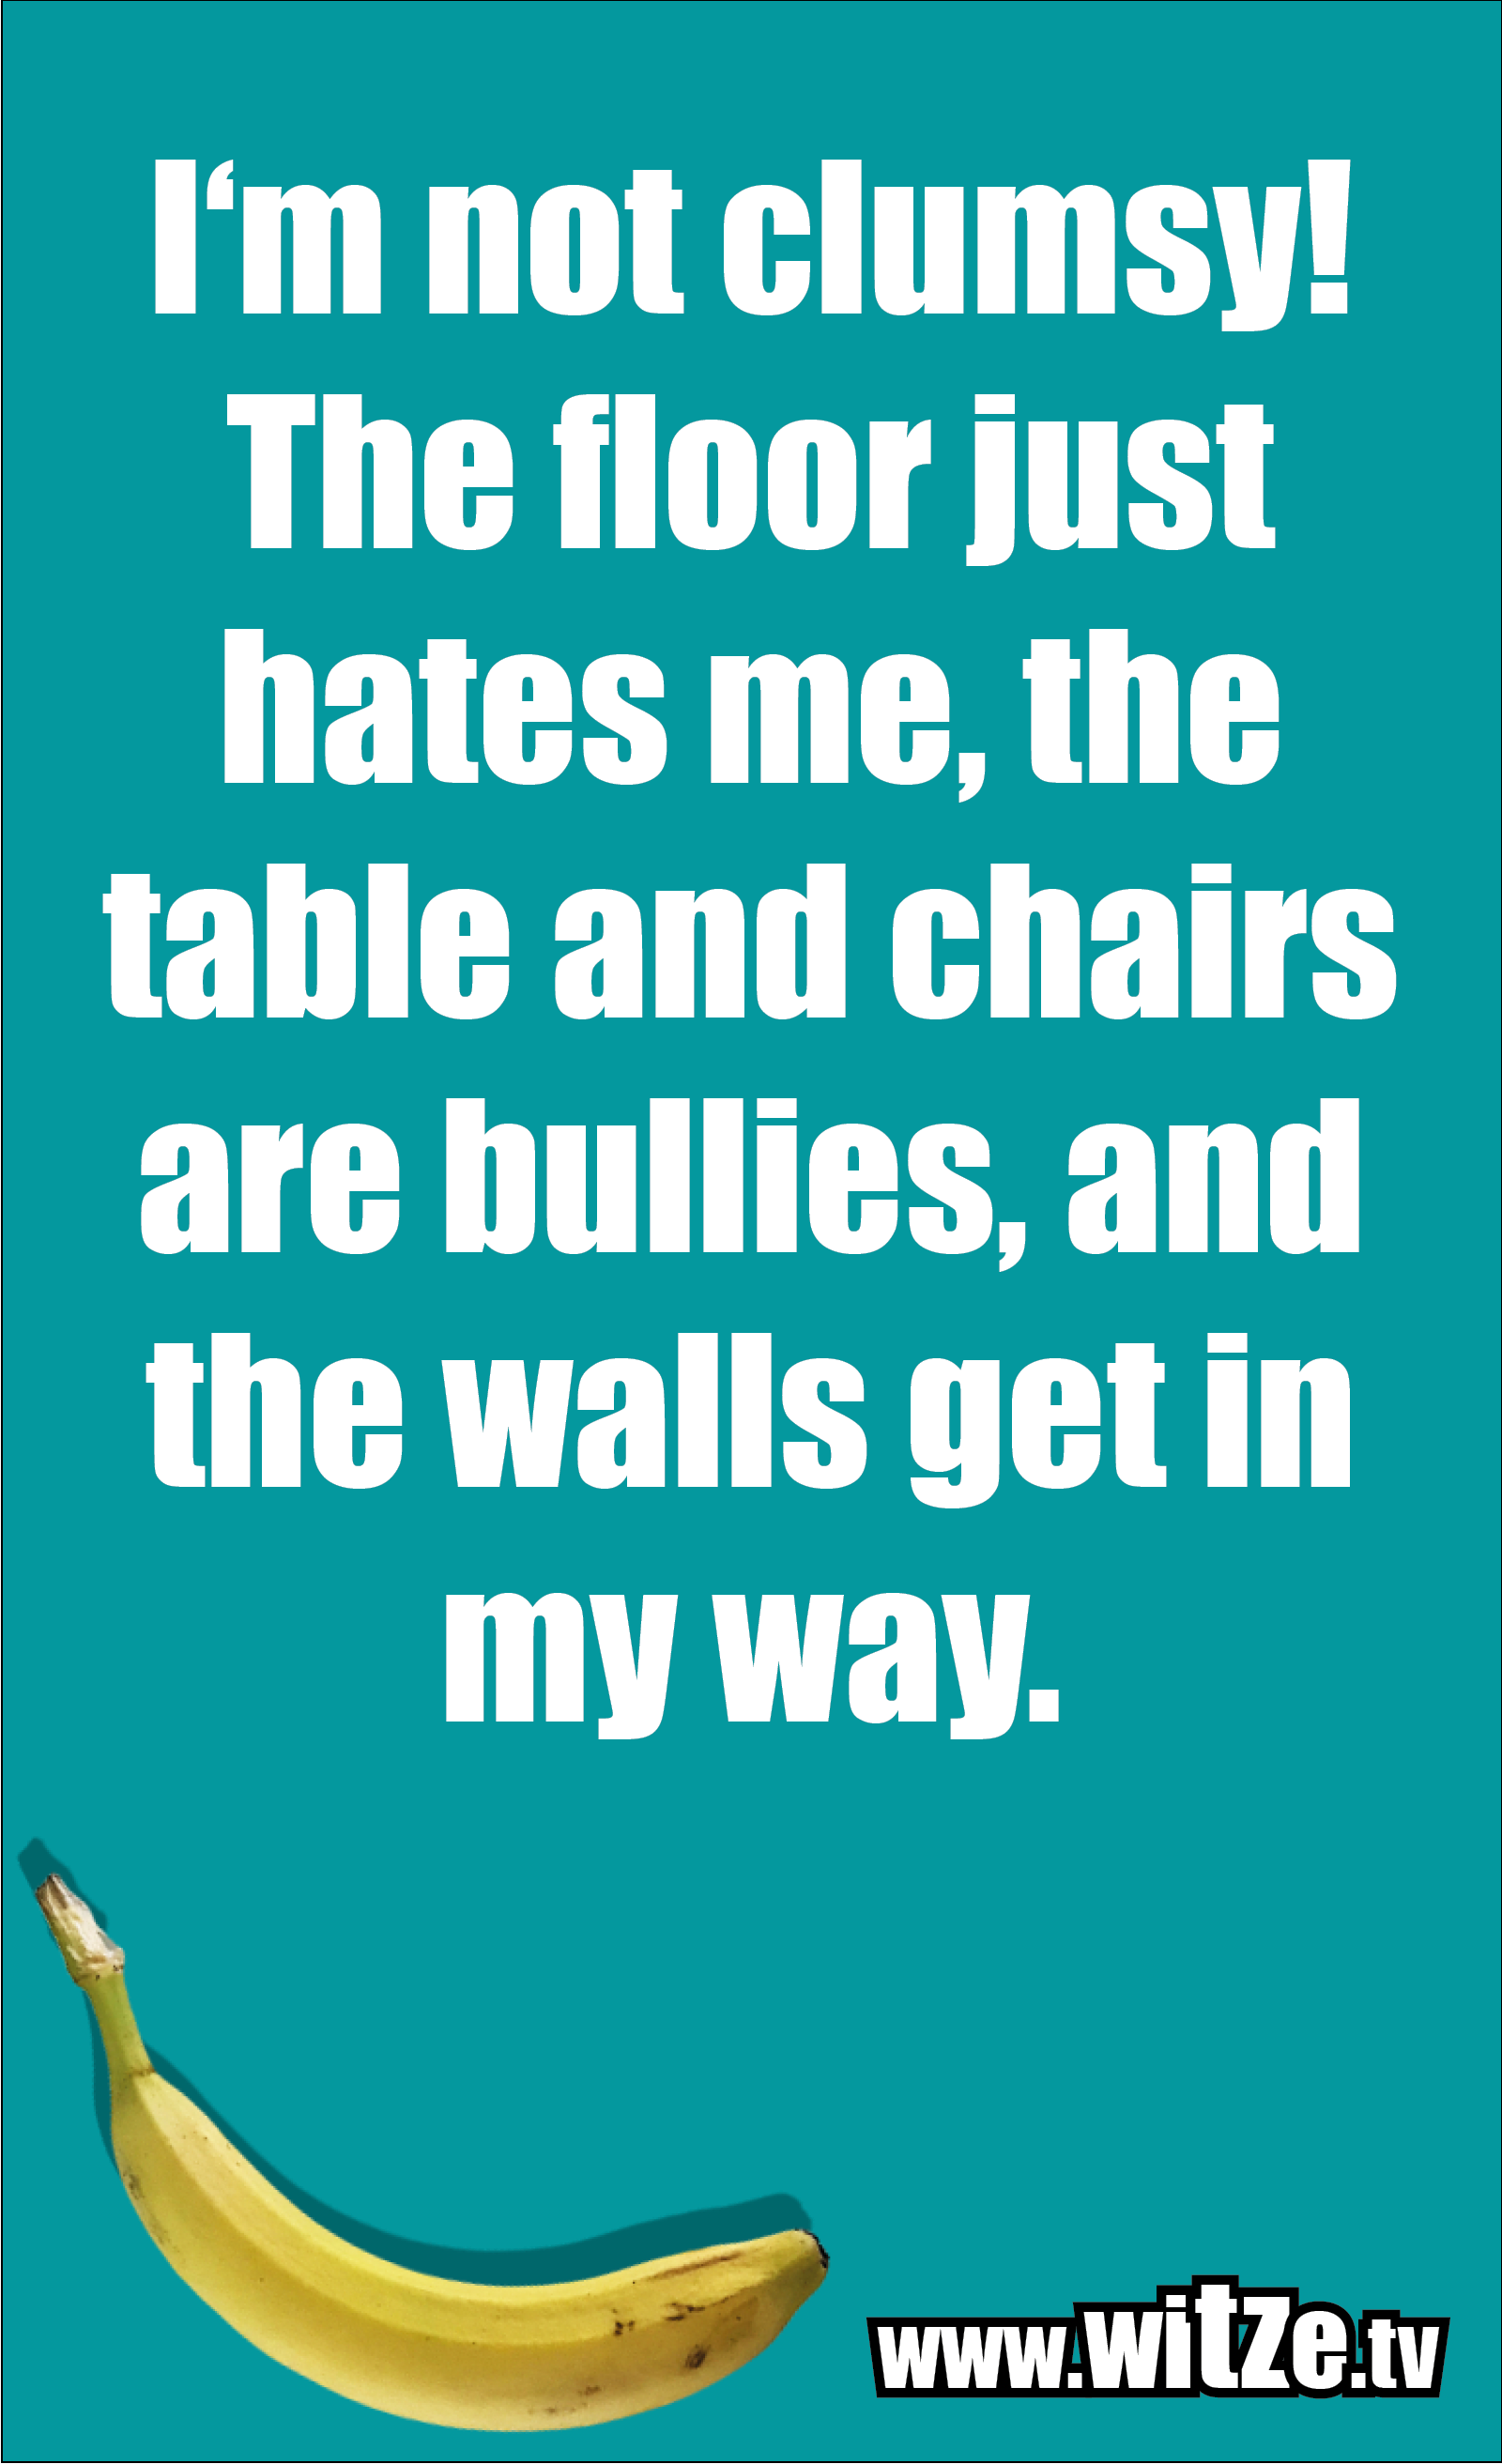 Funny sayings… I'm not clumsy! The floor just hates me, the table and chairs are bullies, and the walls get in my way.